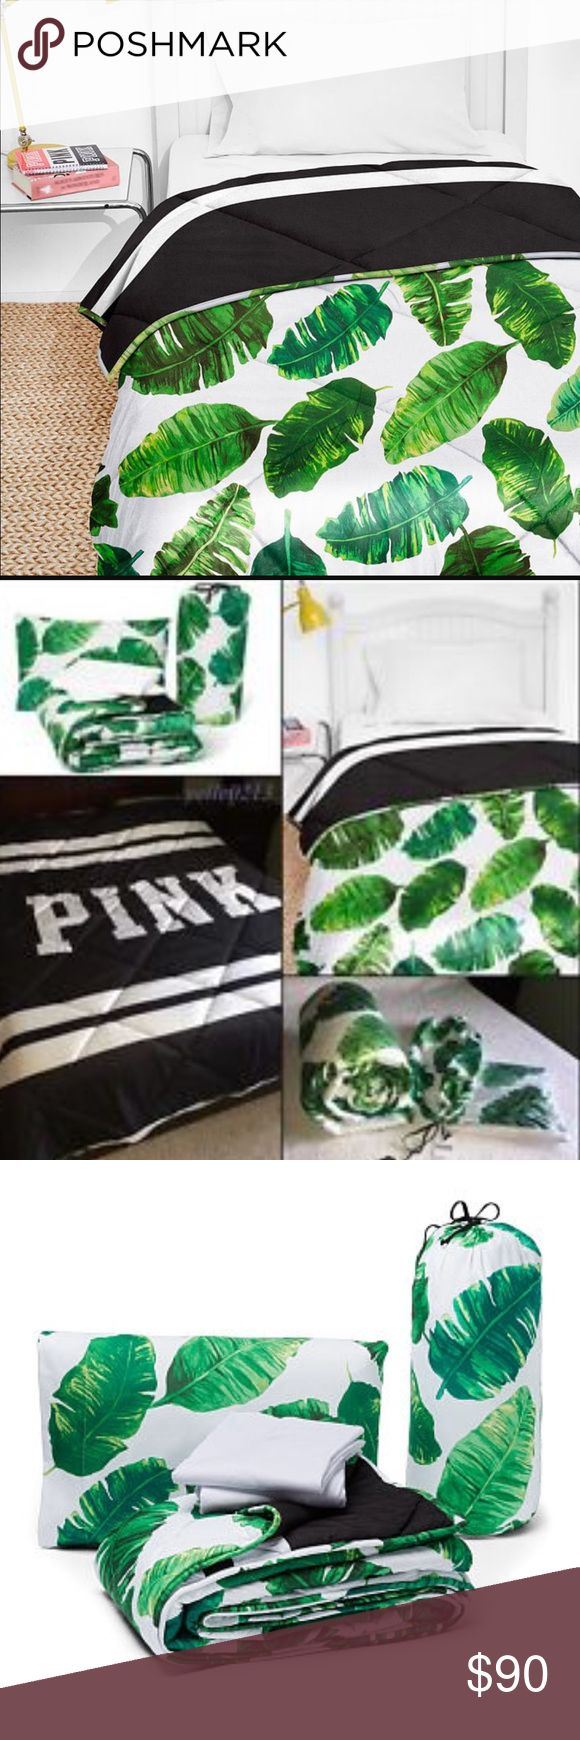 """VS PINK bed in a bag comforter set / green Product Details Move-in day made easy thanks to this all-in-one bed set. Comes with a reversible comforter, sheet set and pillow cases. In cute colors and prints to deck out your dorm room or bedroom. Only from VS PINK. Comforter, flat sheet, fitted sheet and pillow cases included in set Twin/Twin XL includes one pillowcase Twin/twin XL comforter : 64"""" x 88"""" Twin/twin XL flat: 66"""" x 100"""" Fitted: 39"""" x 75""""  tropical levels green from one side and…"""